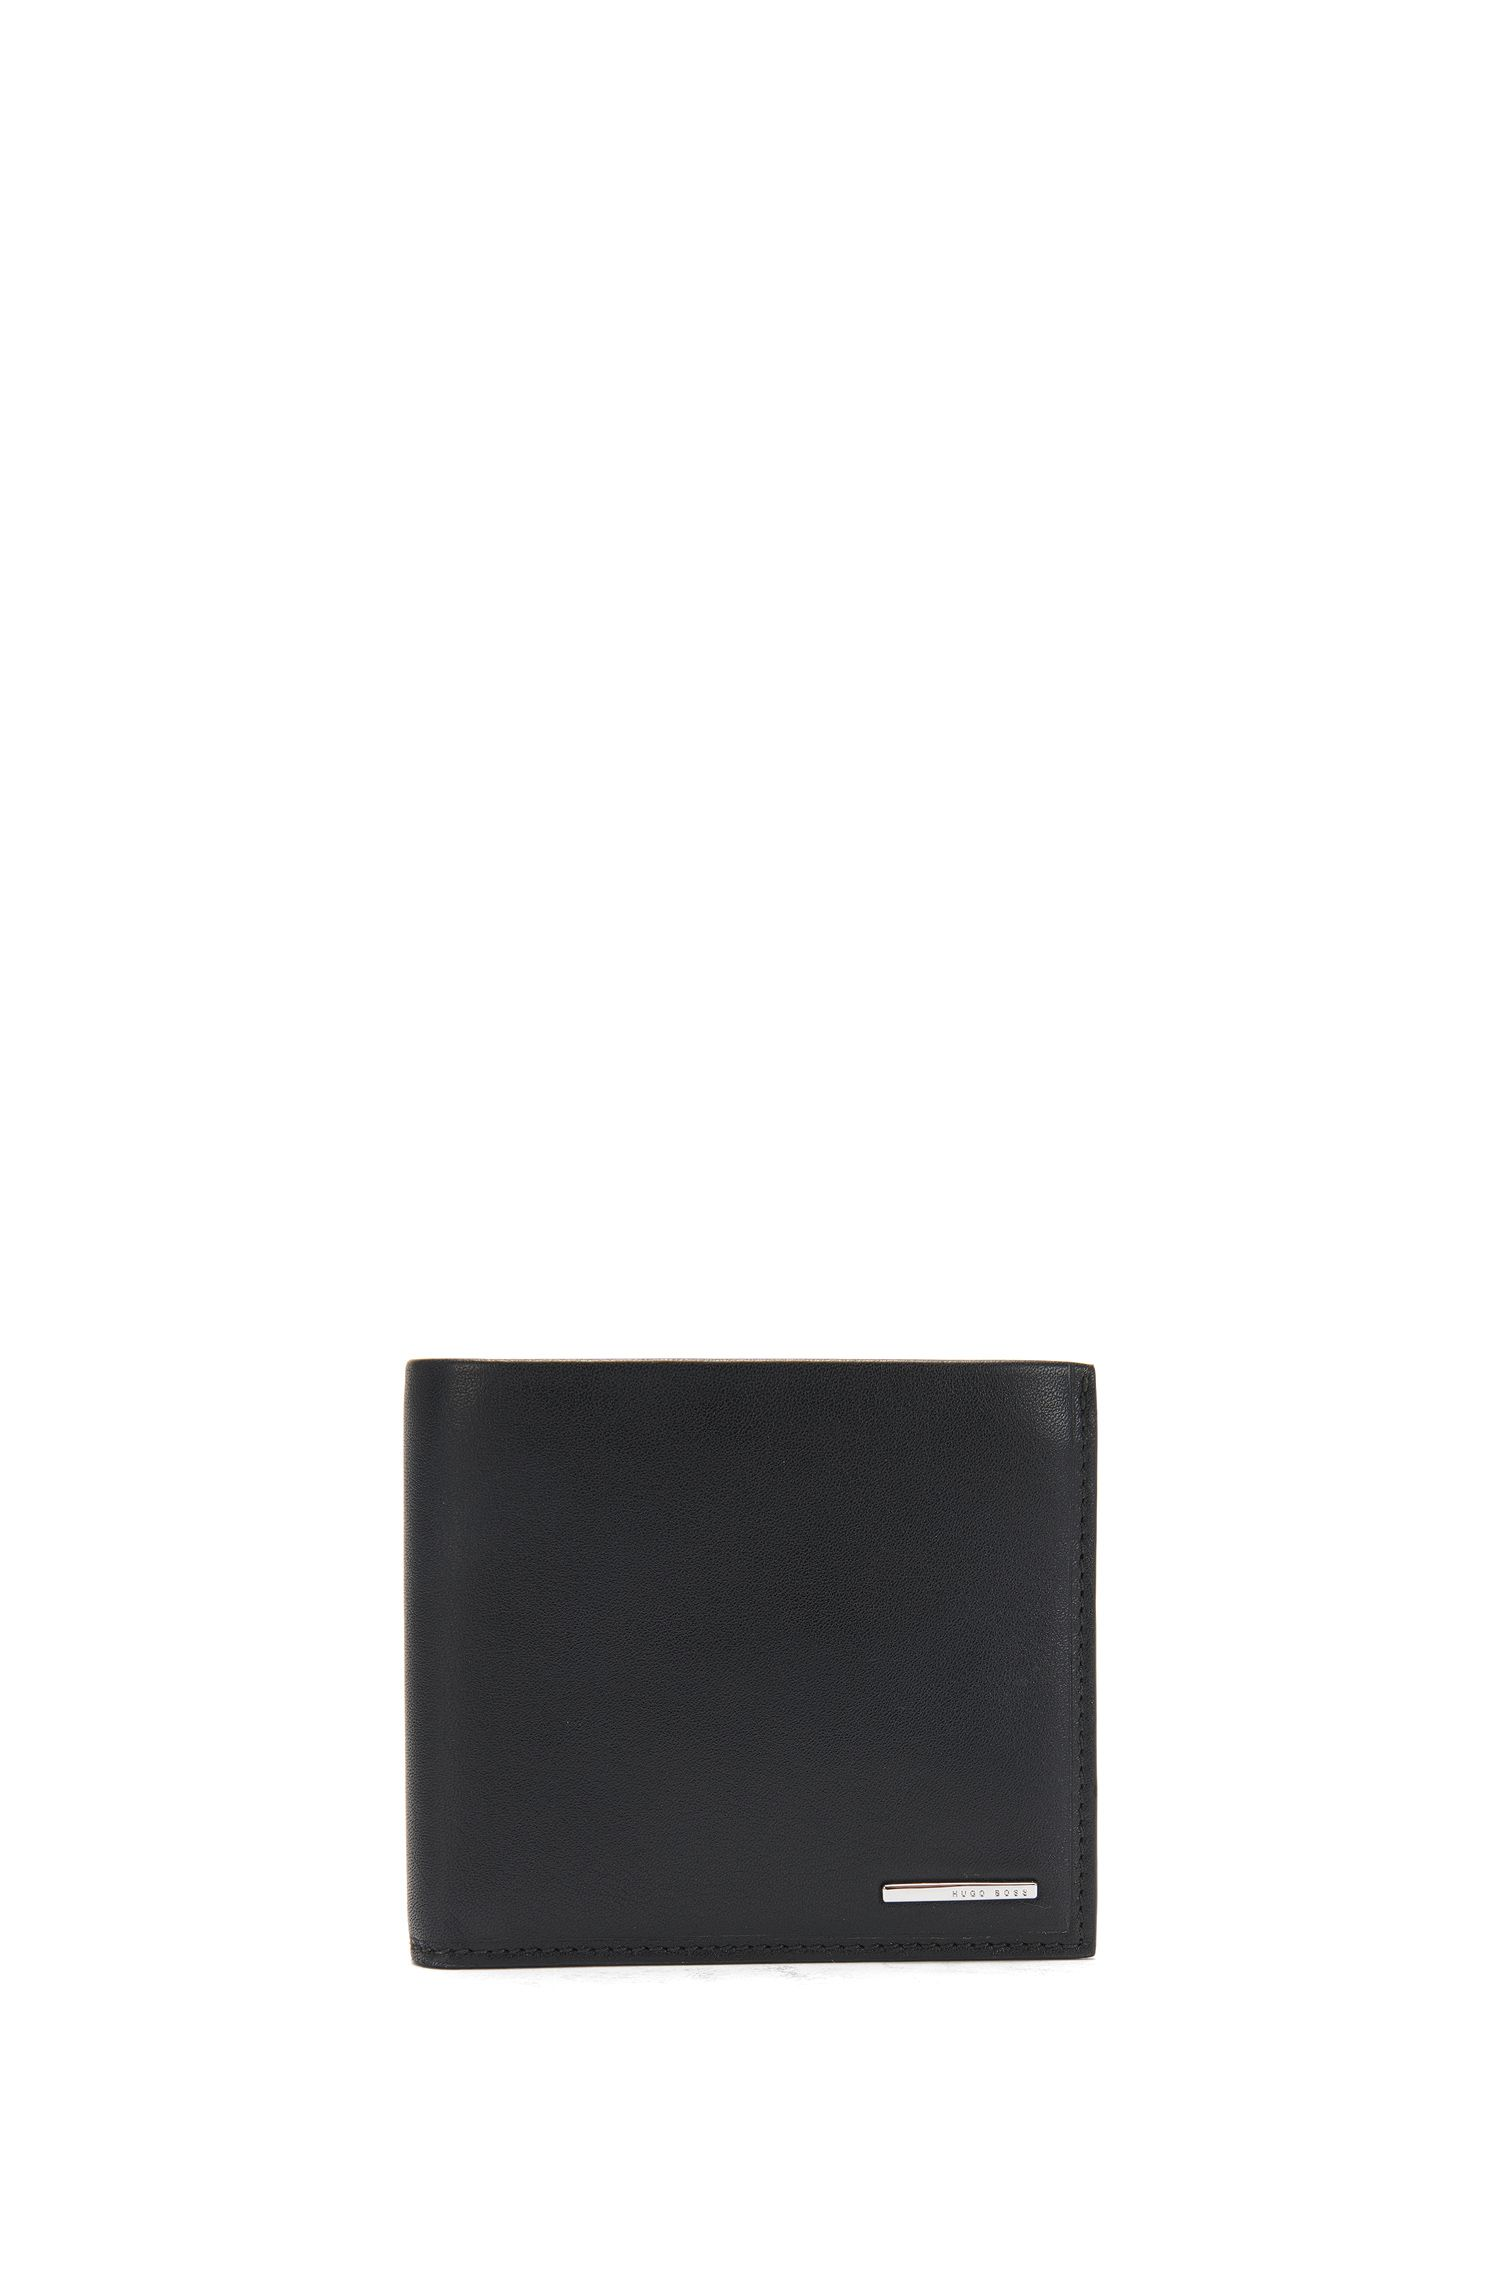 Bi-fold wallet in natural-grain leather with coin pocket